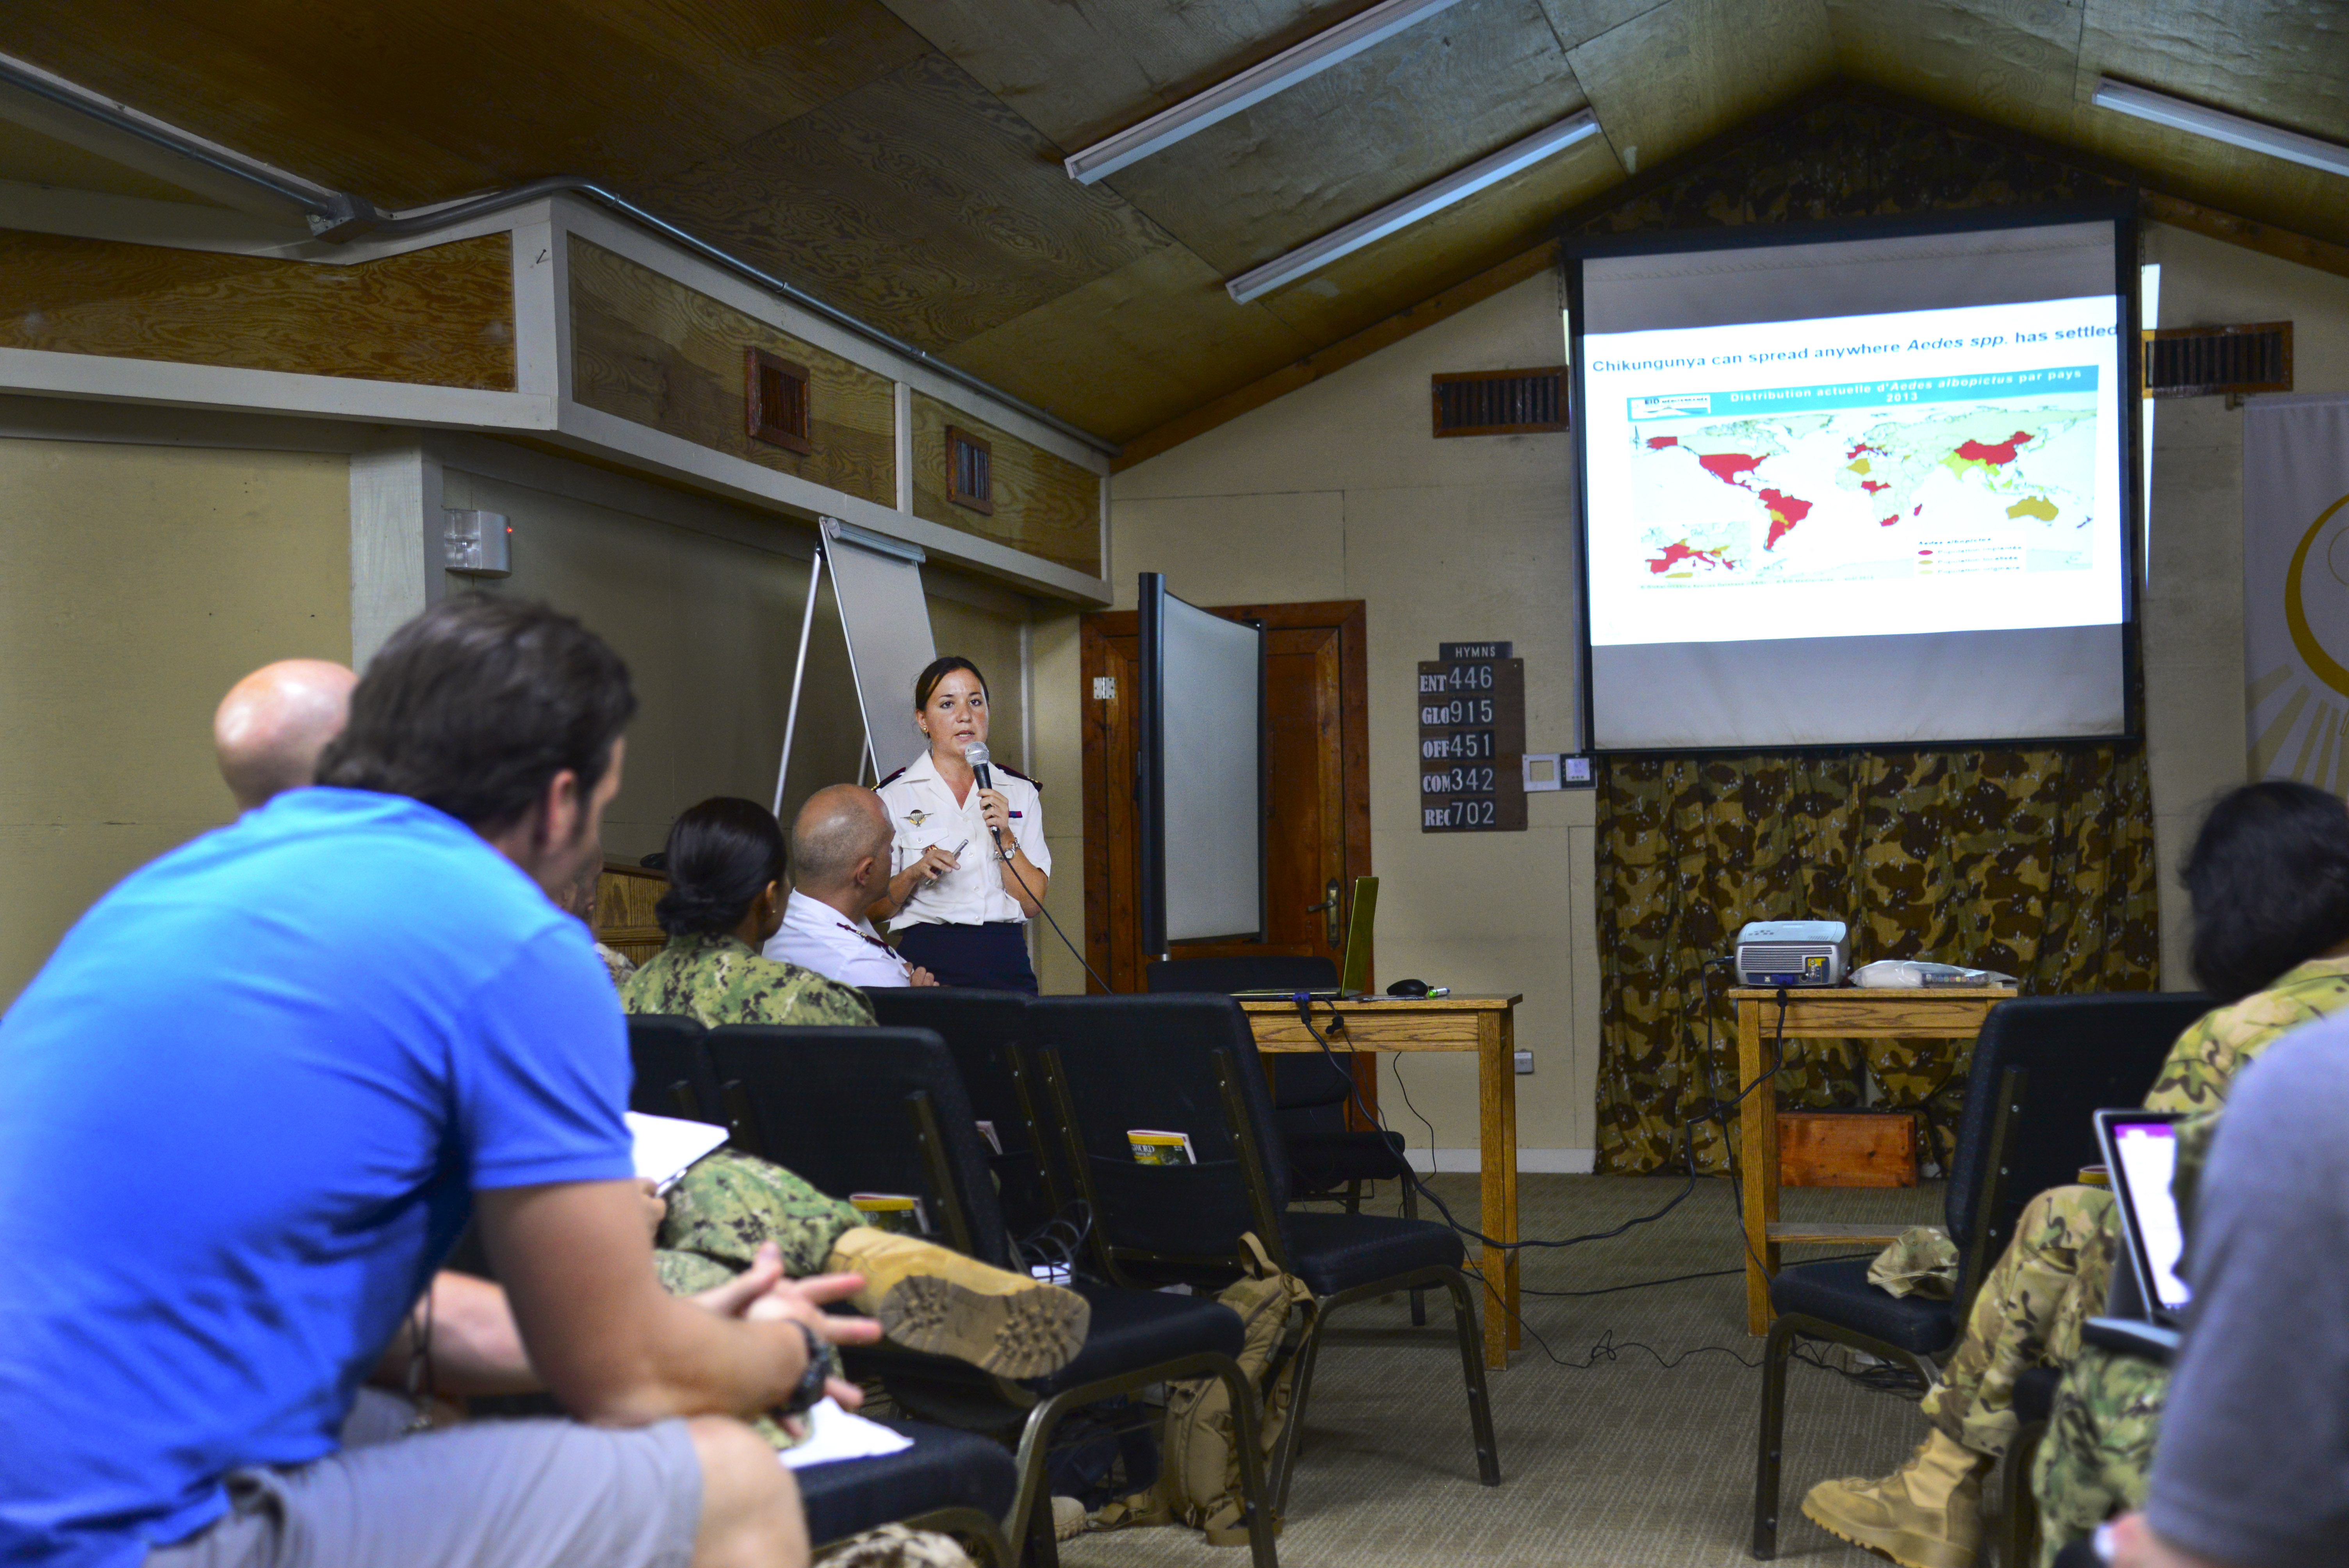 French Army Capt. Emilie Javelle, Internal medicine clinician, teaches medical professionals about the Chikungunya virus during the Military Tropical Medicine seminar May 11, 2016 at Camp Lemonnier, Djibouti. Javelle talked about the symptoms and treatments of Chikungunya as there is currently no vaccine for the disease. (U.S. Air Force photo by Senior Airman Benjamin Raughton/Released)